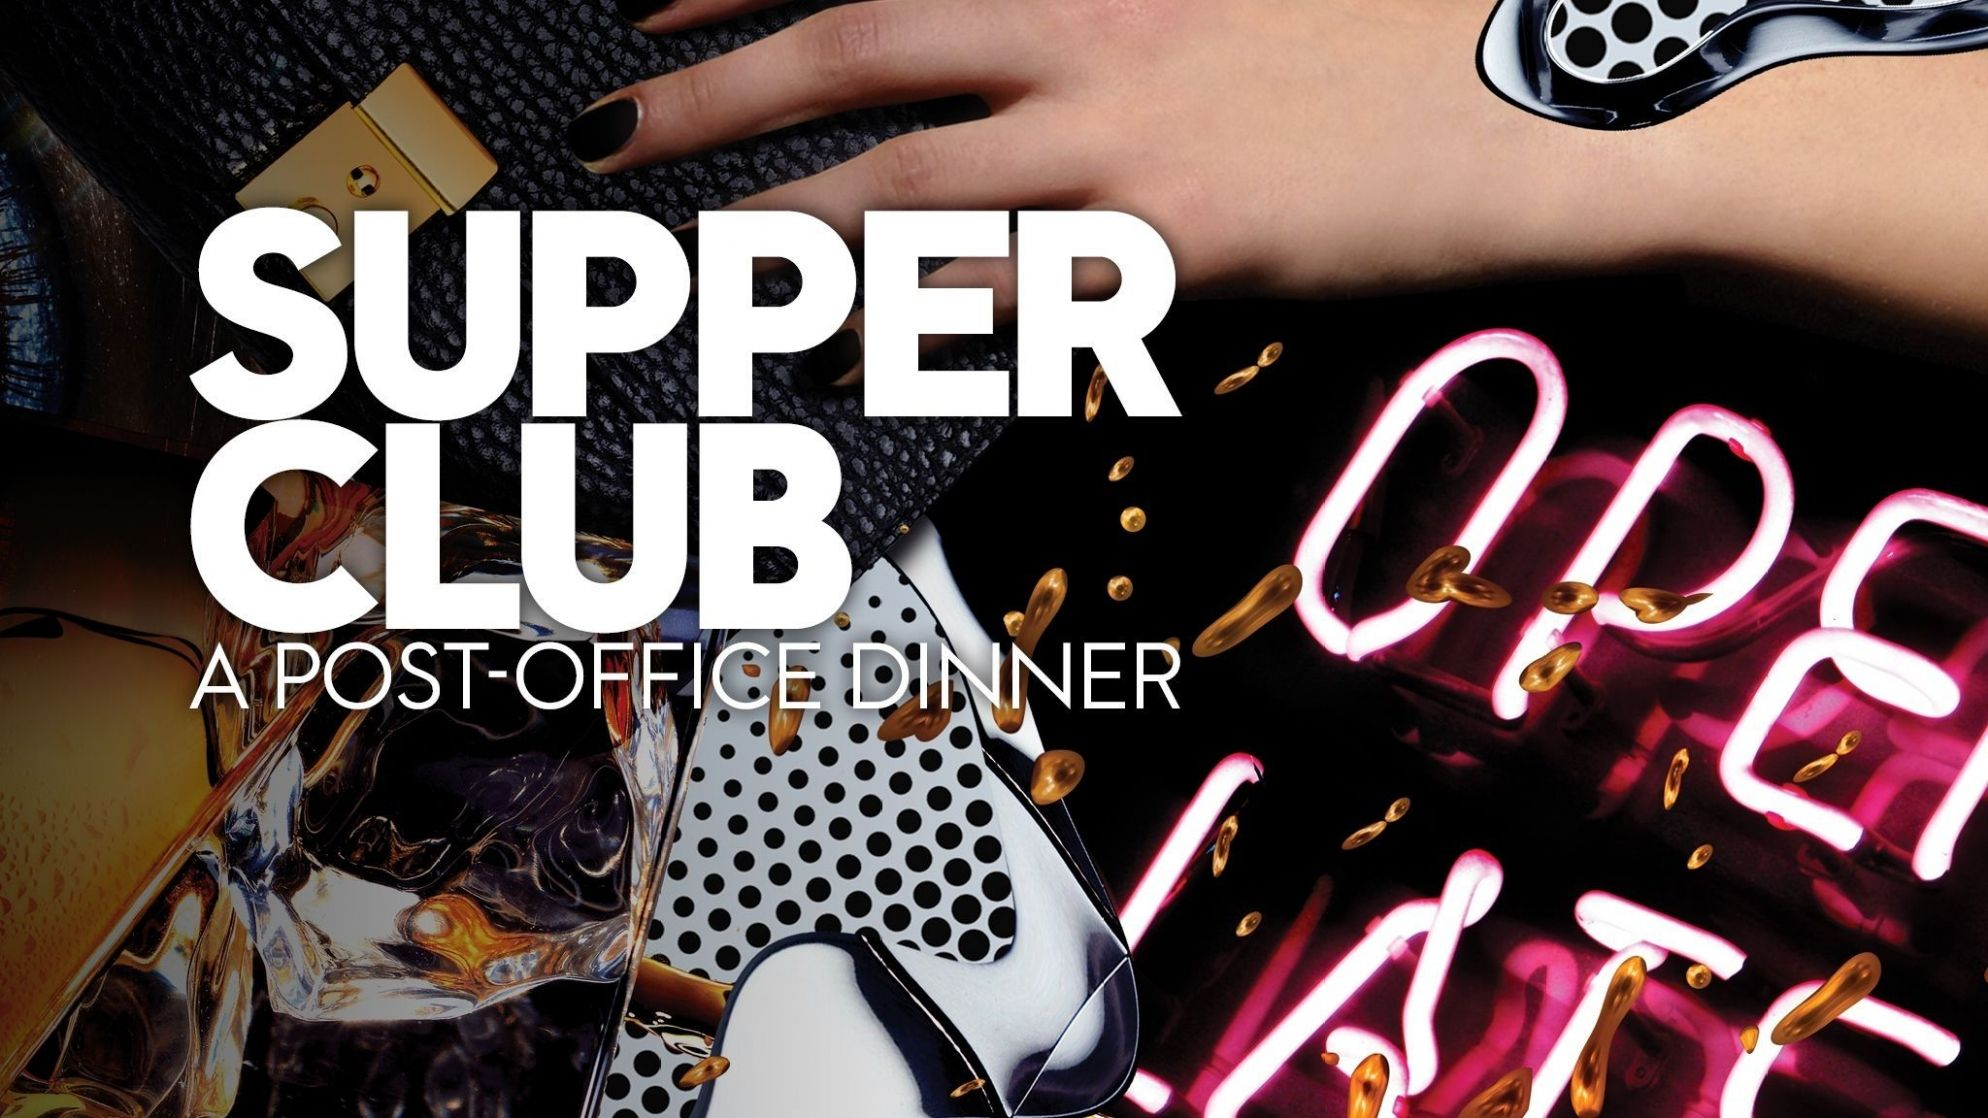 Supper Club at Market by JG in Doha